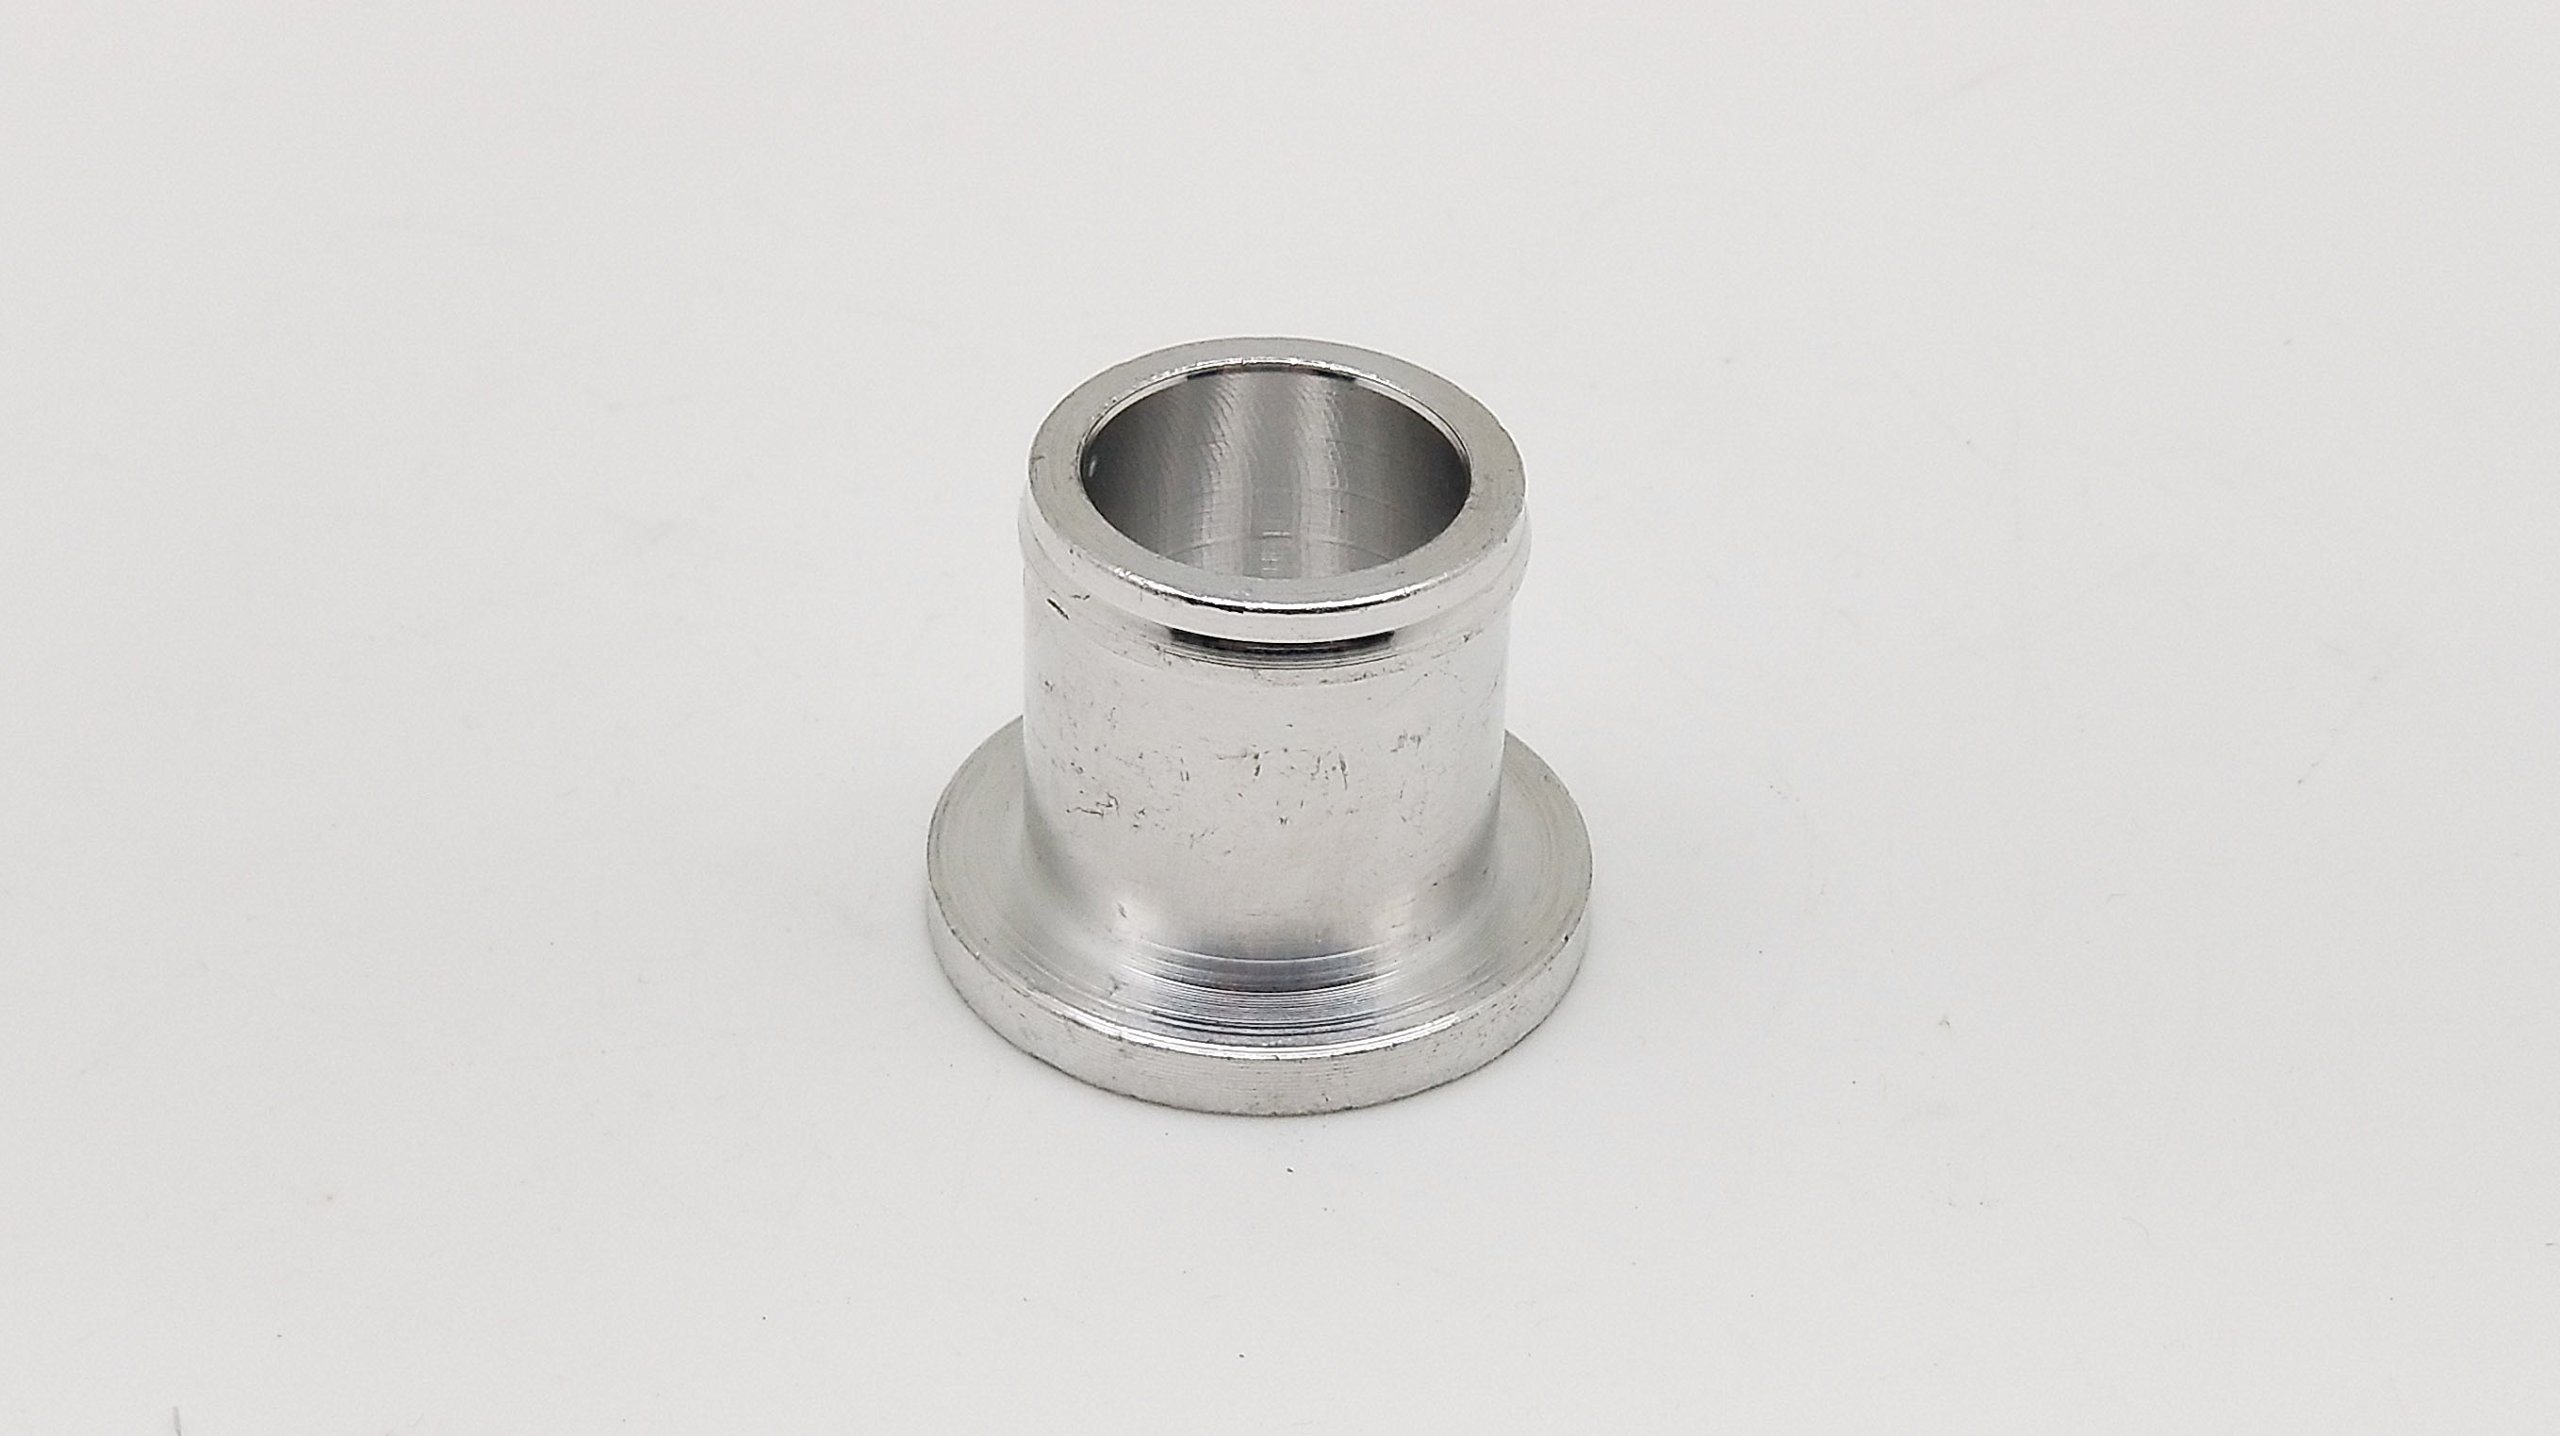 Autobahn88 CNC Aluminum Blanking Plug Bung for 25mm (1 inch) Hose Pipe Tube